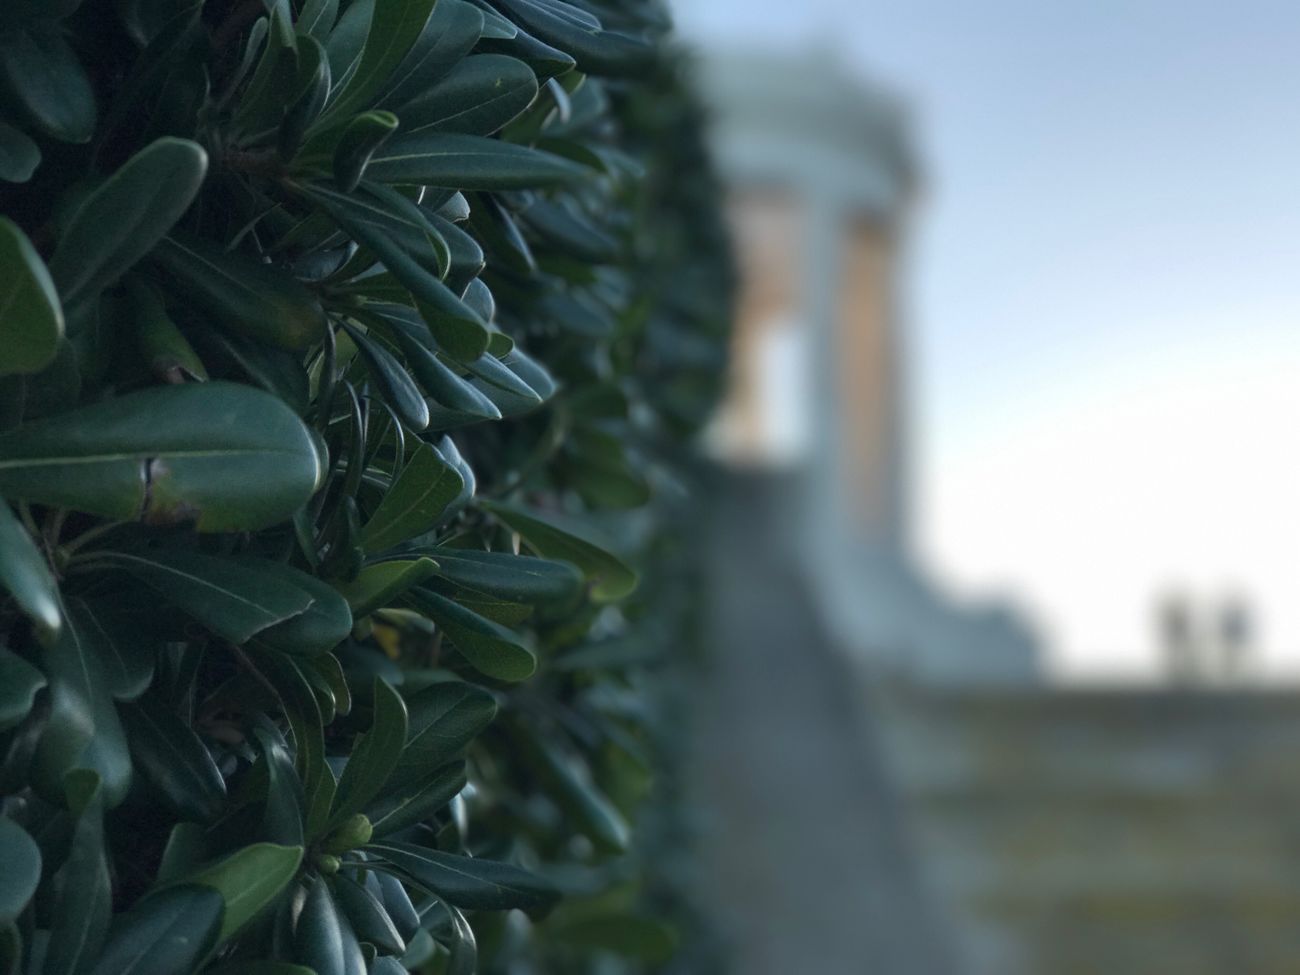 Green Color Leaf Nature Plant Focus On Foreground Outdoors Day Cityscape Camera - Photographic Equipment Mycity Ancona, Italy Ancona Italy Sky Monument Architecture Photographing History